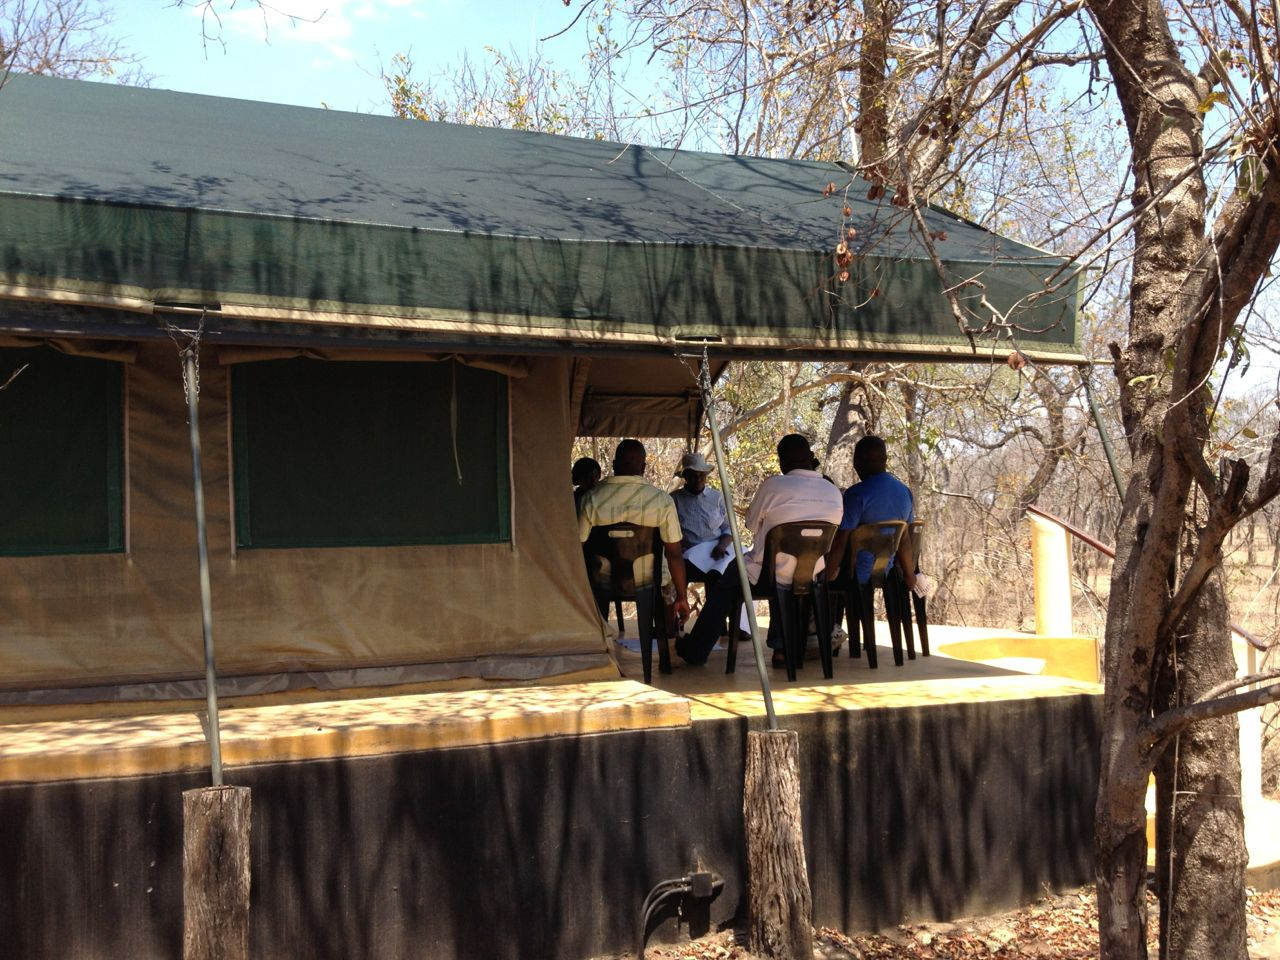 Small group discussion on the veranda of one of the accommodation tents.